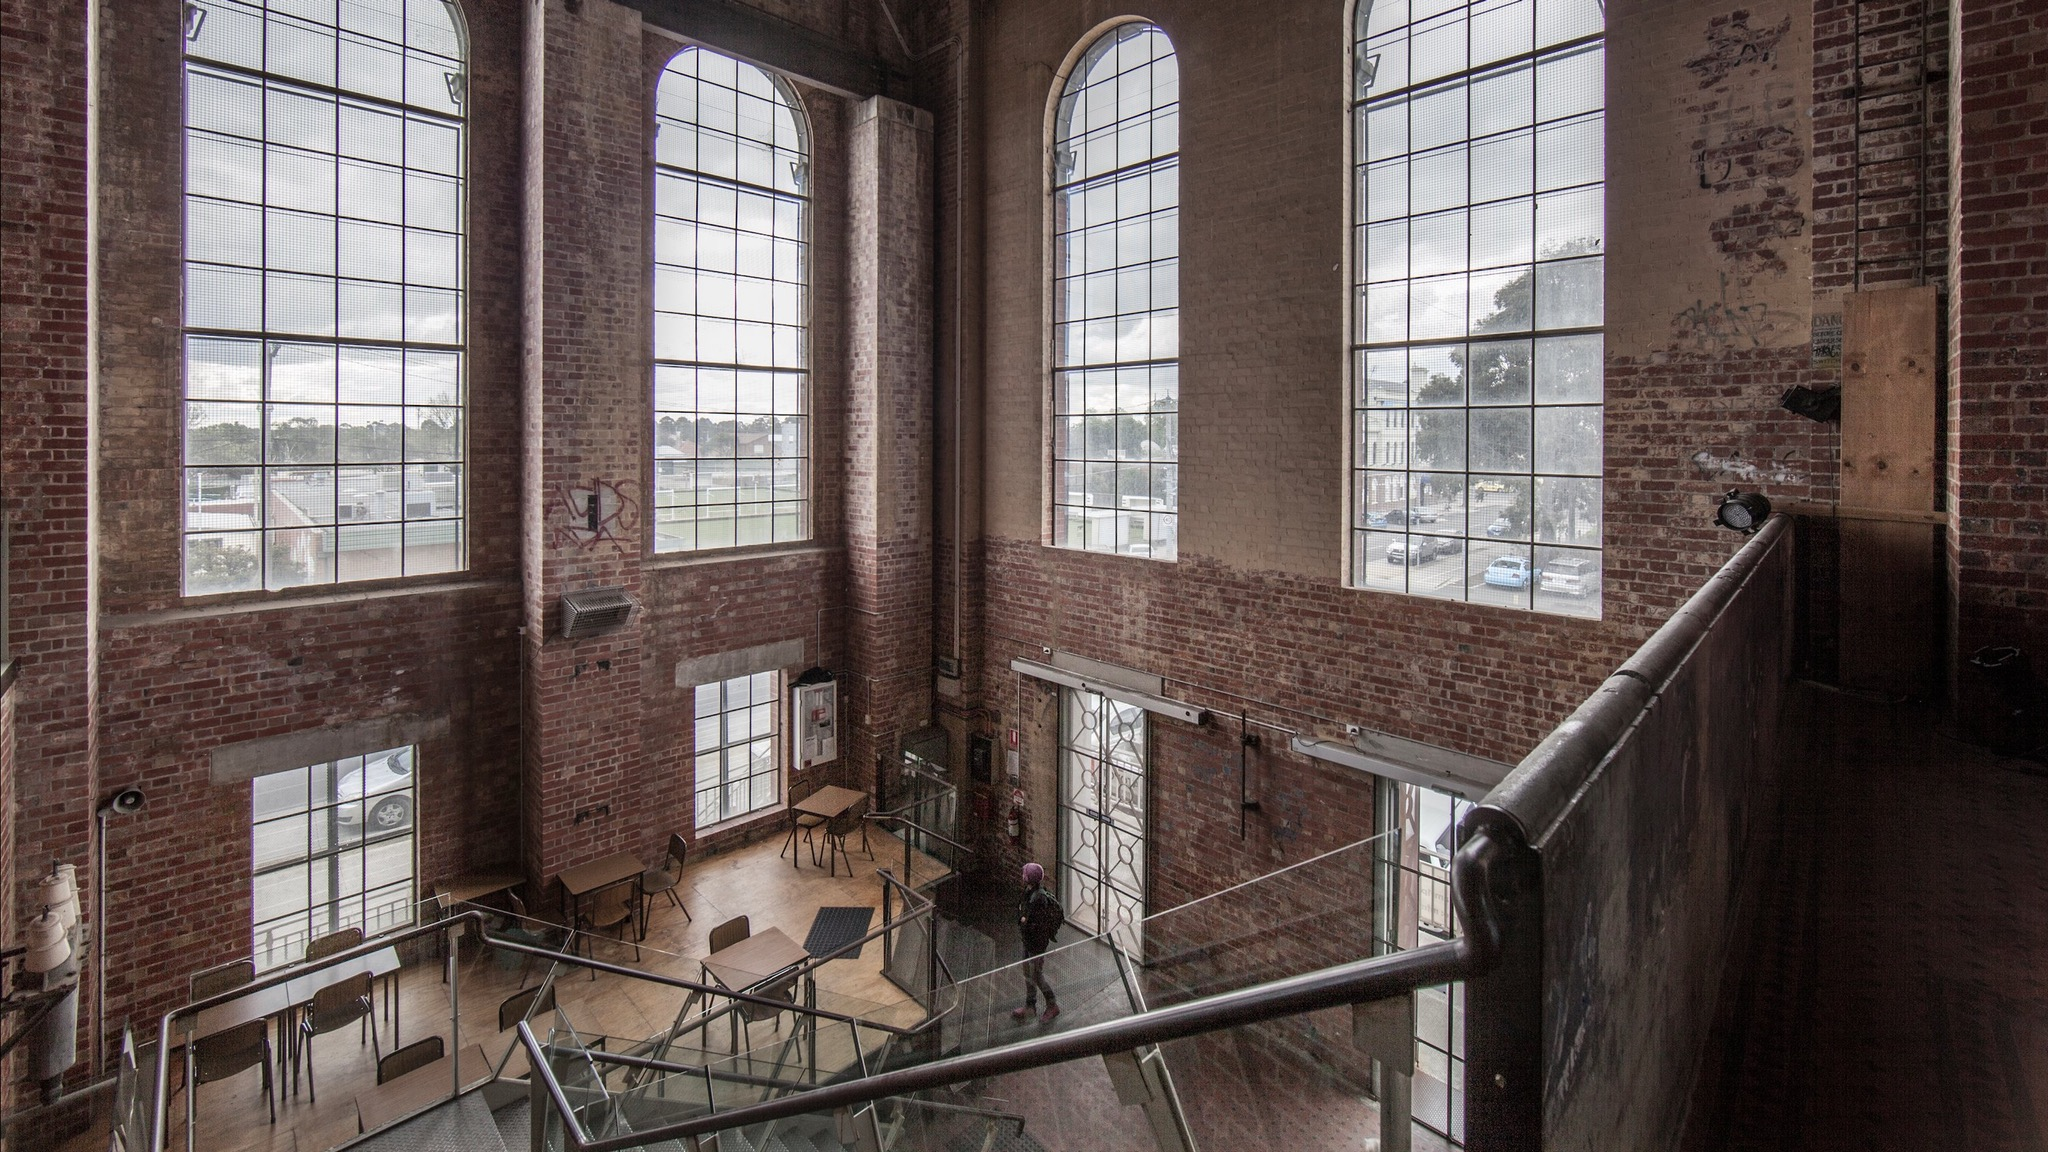 The Foyer of the SUBSTATION taken from the mezzanine large arch windows. Photo by Suzie Blake